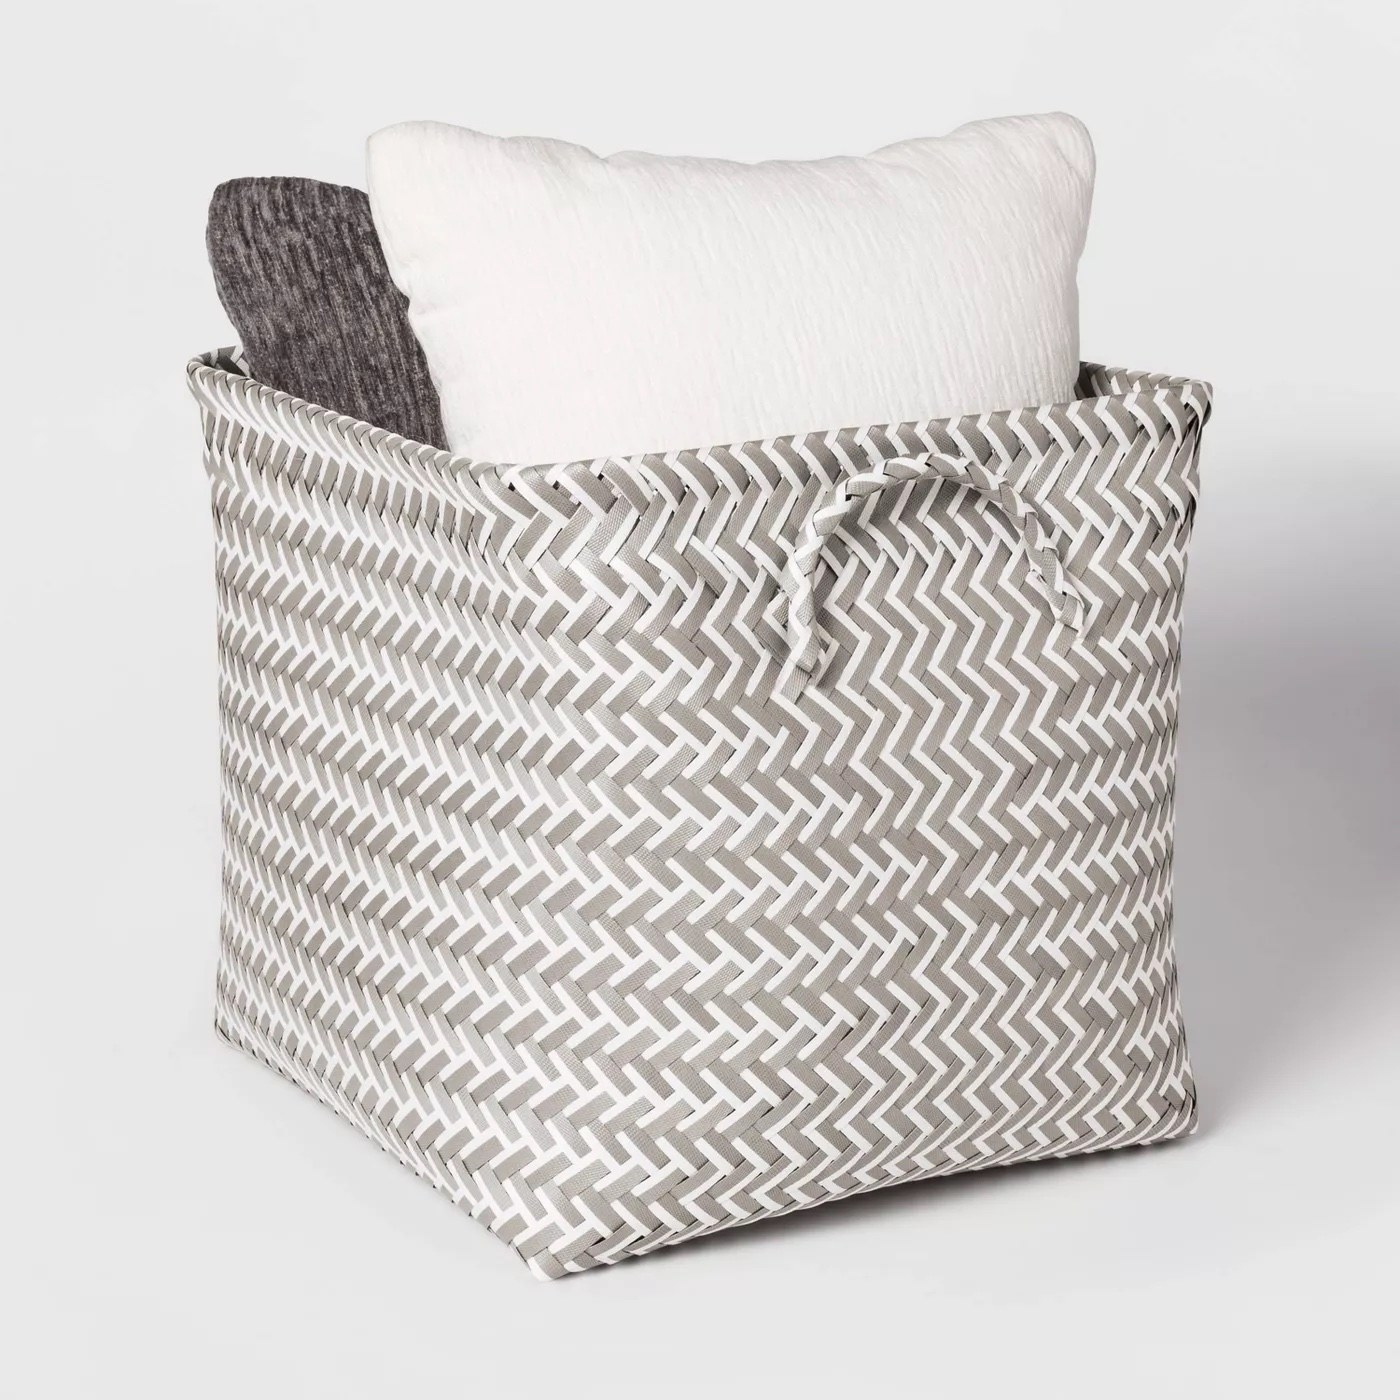 The storage bag with pillows inside